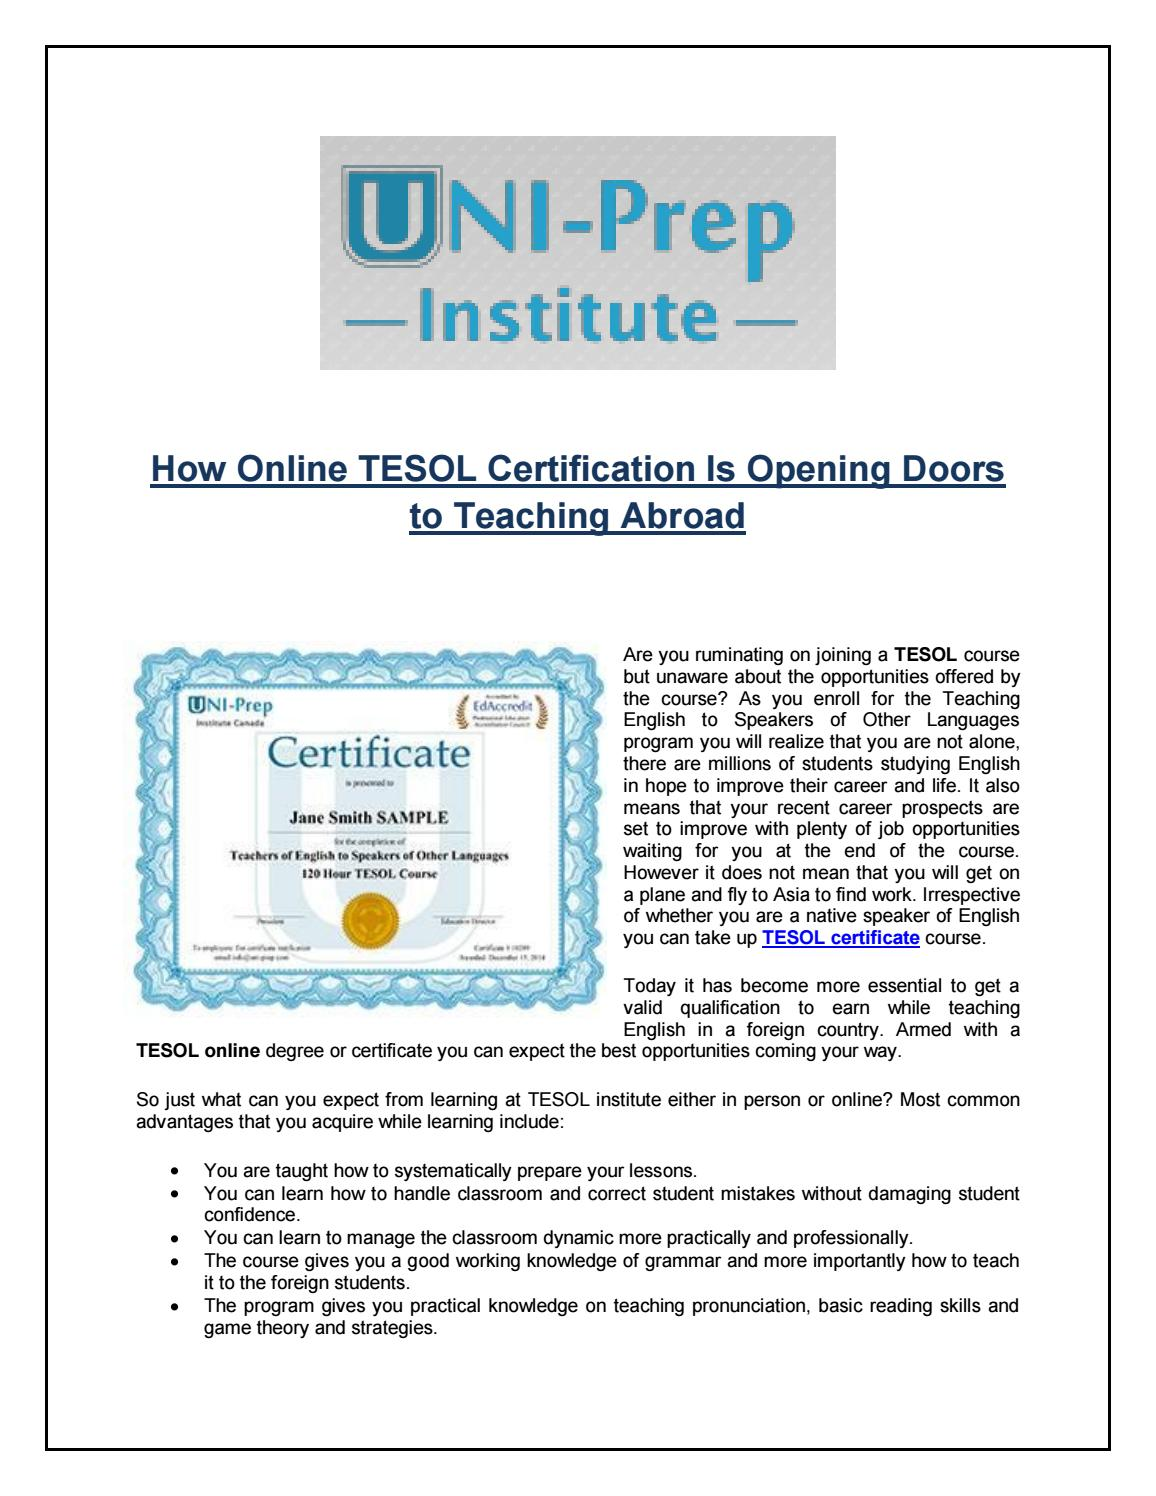 How online tesol certification is opening doors to teaching abroad how online tesol certification is opening doors to teaching abroad by uniprep issuu 1betcityfo Image collections